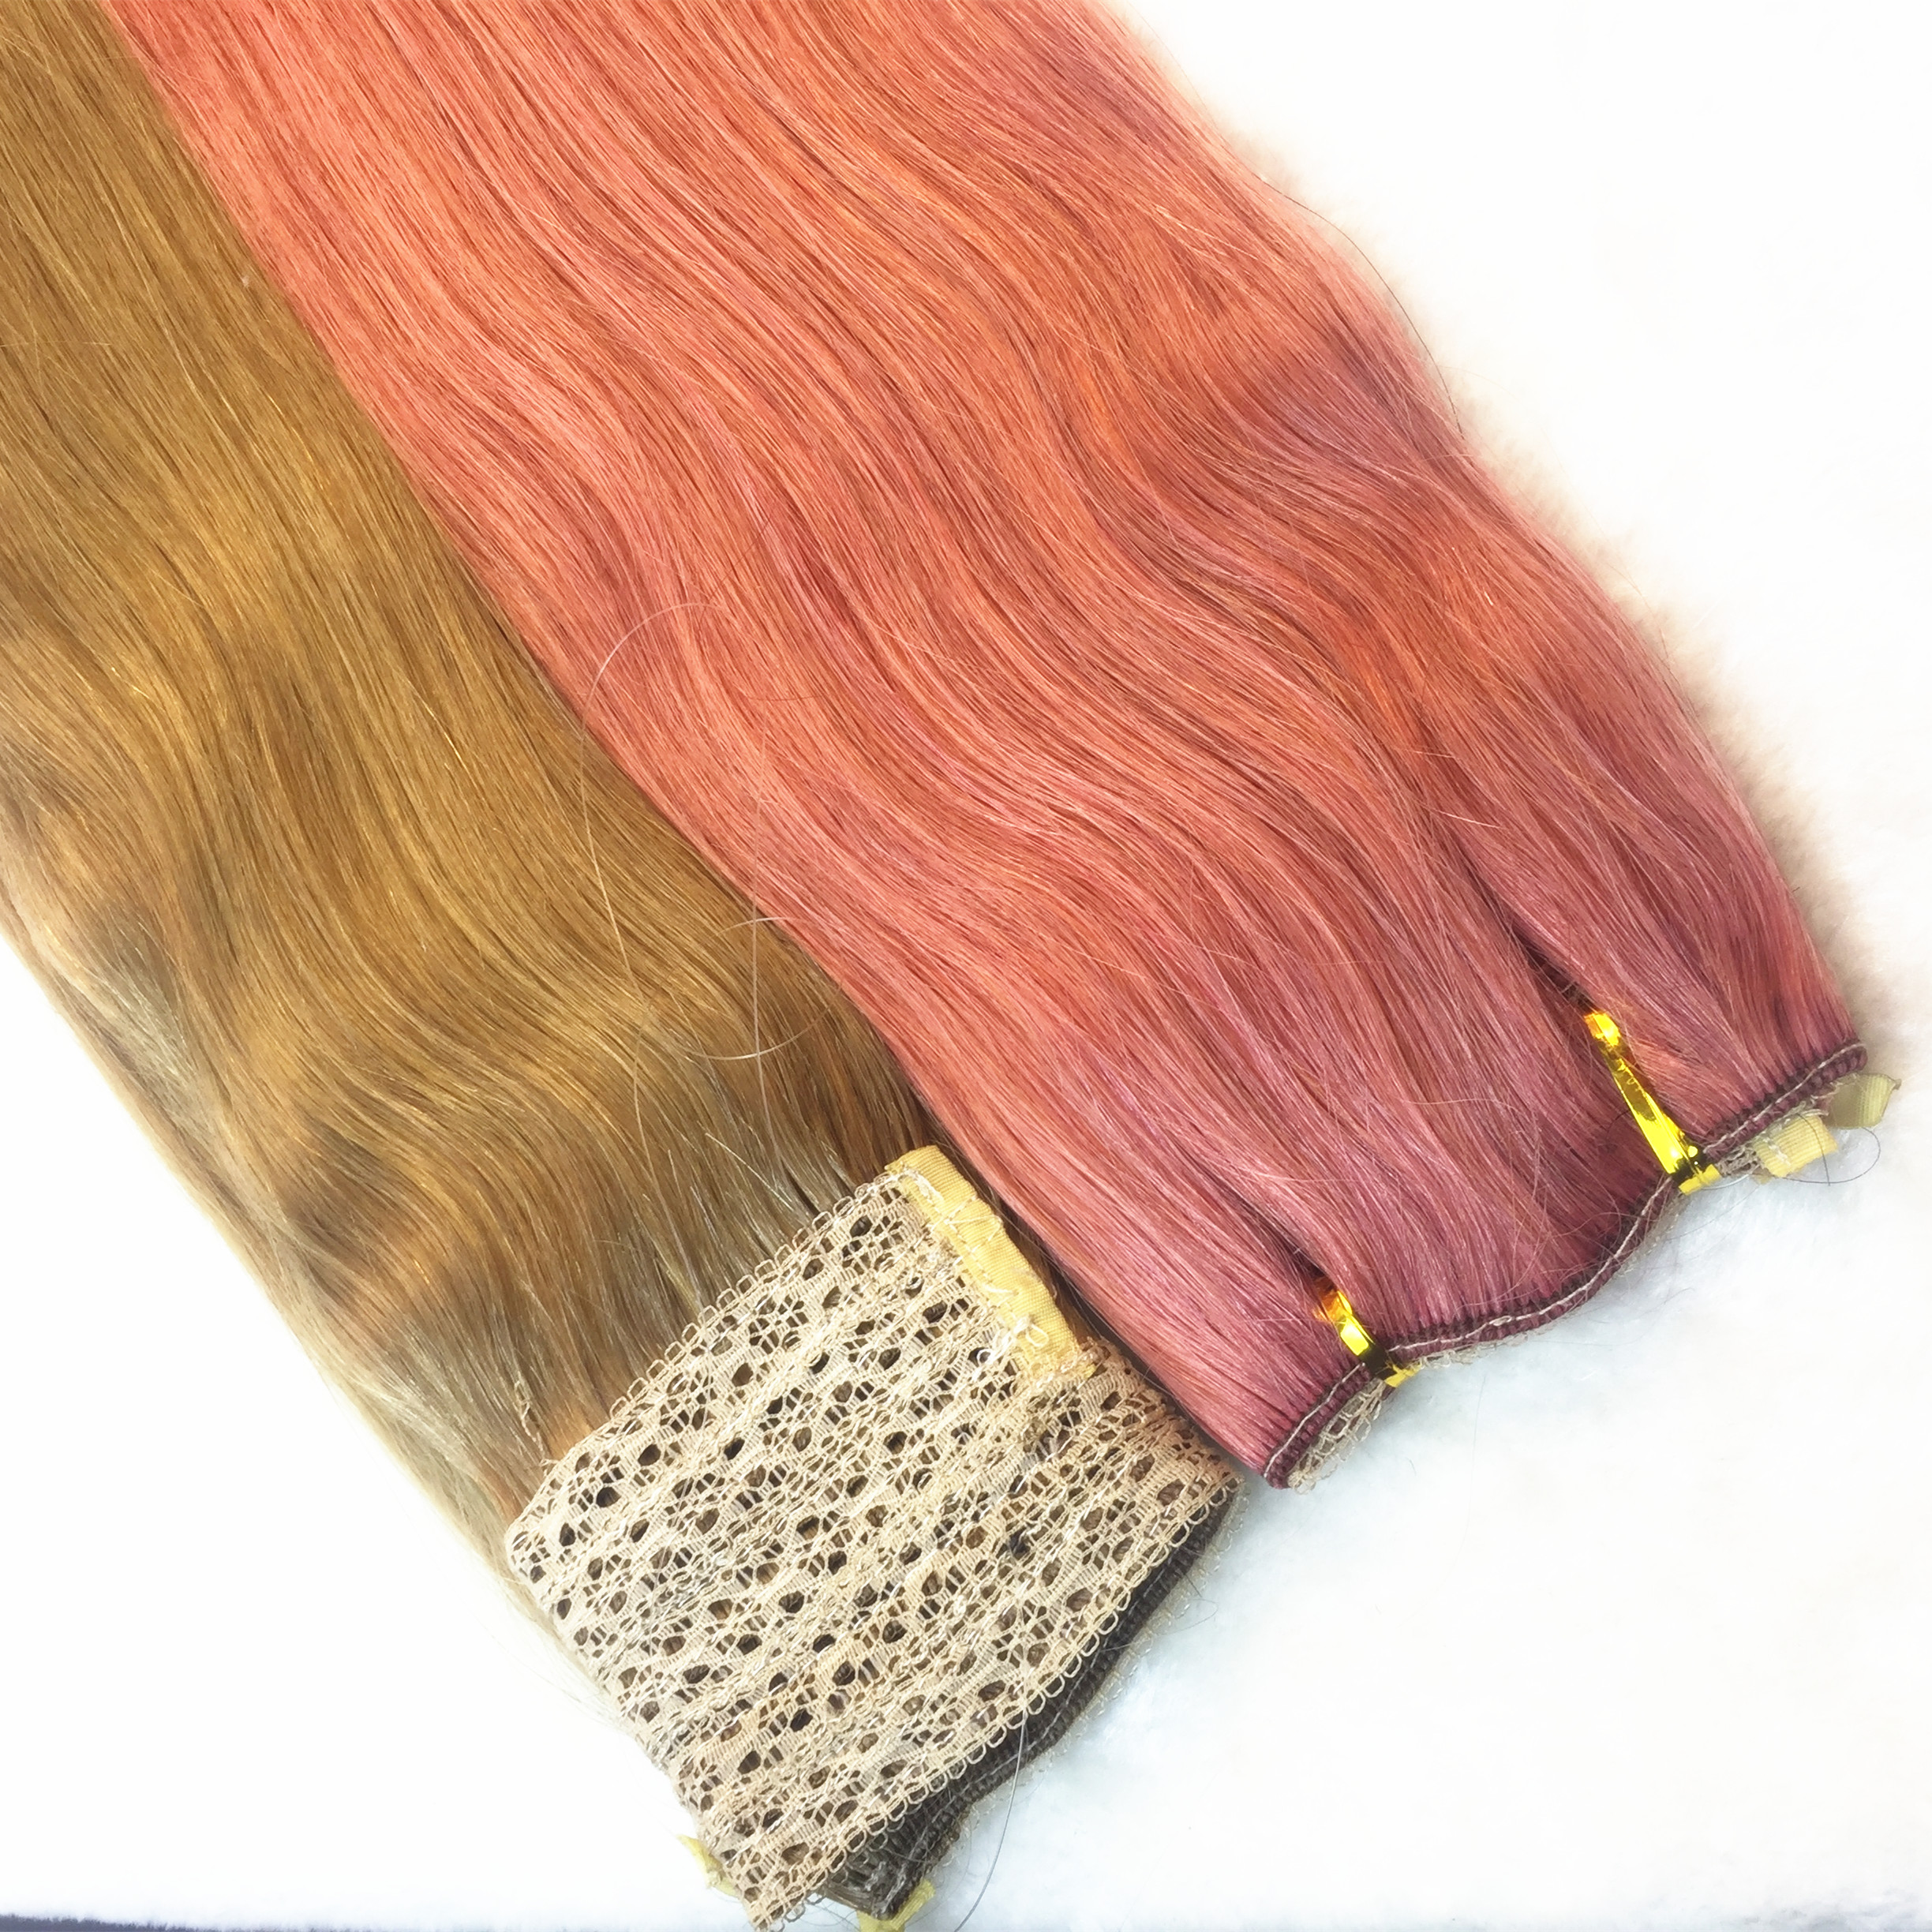 Organic hair facotory, say good bye to fake hair extensions !